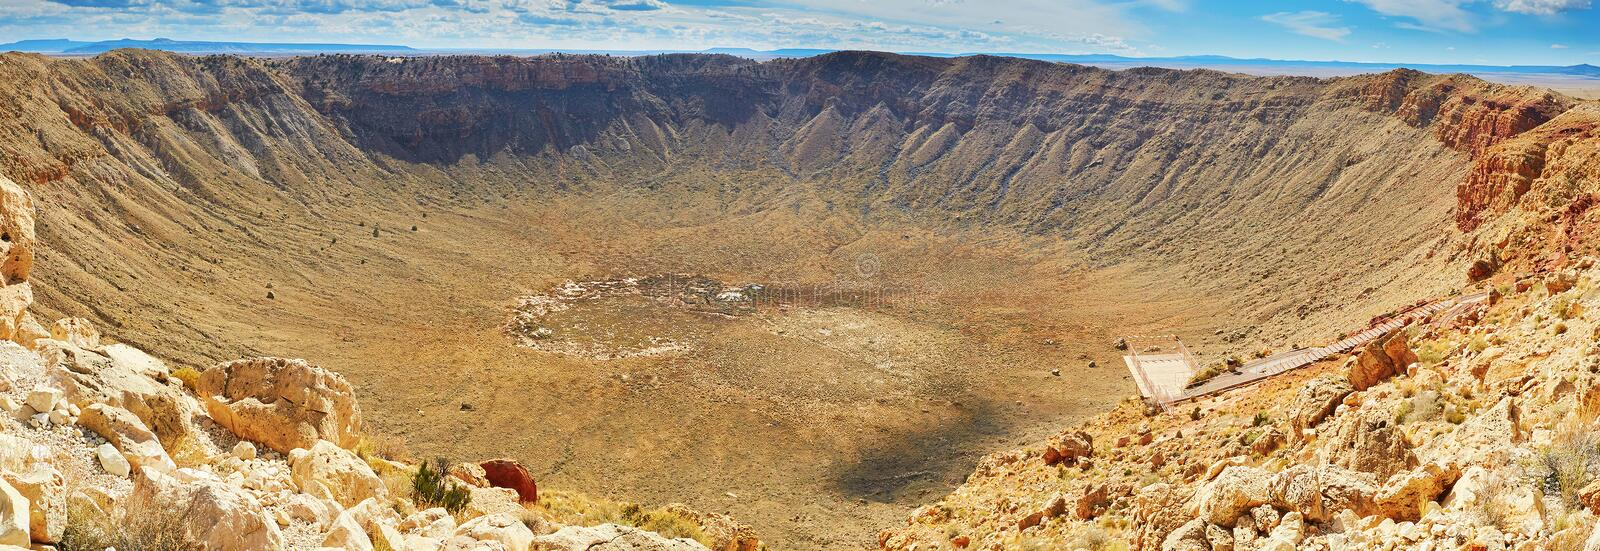 Meteor crater also known as Barringer crater in Arizona royalty free stock photo